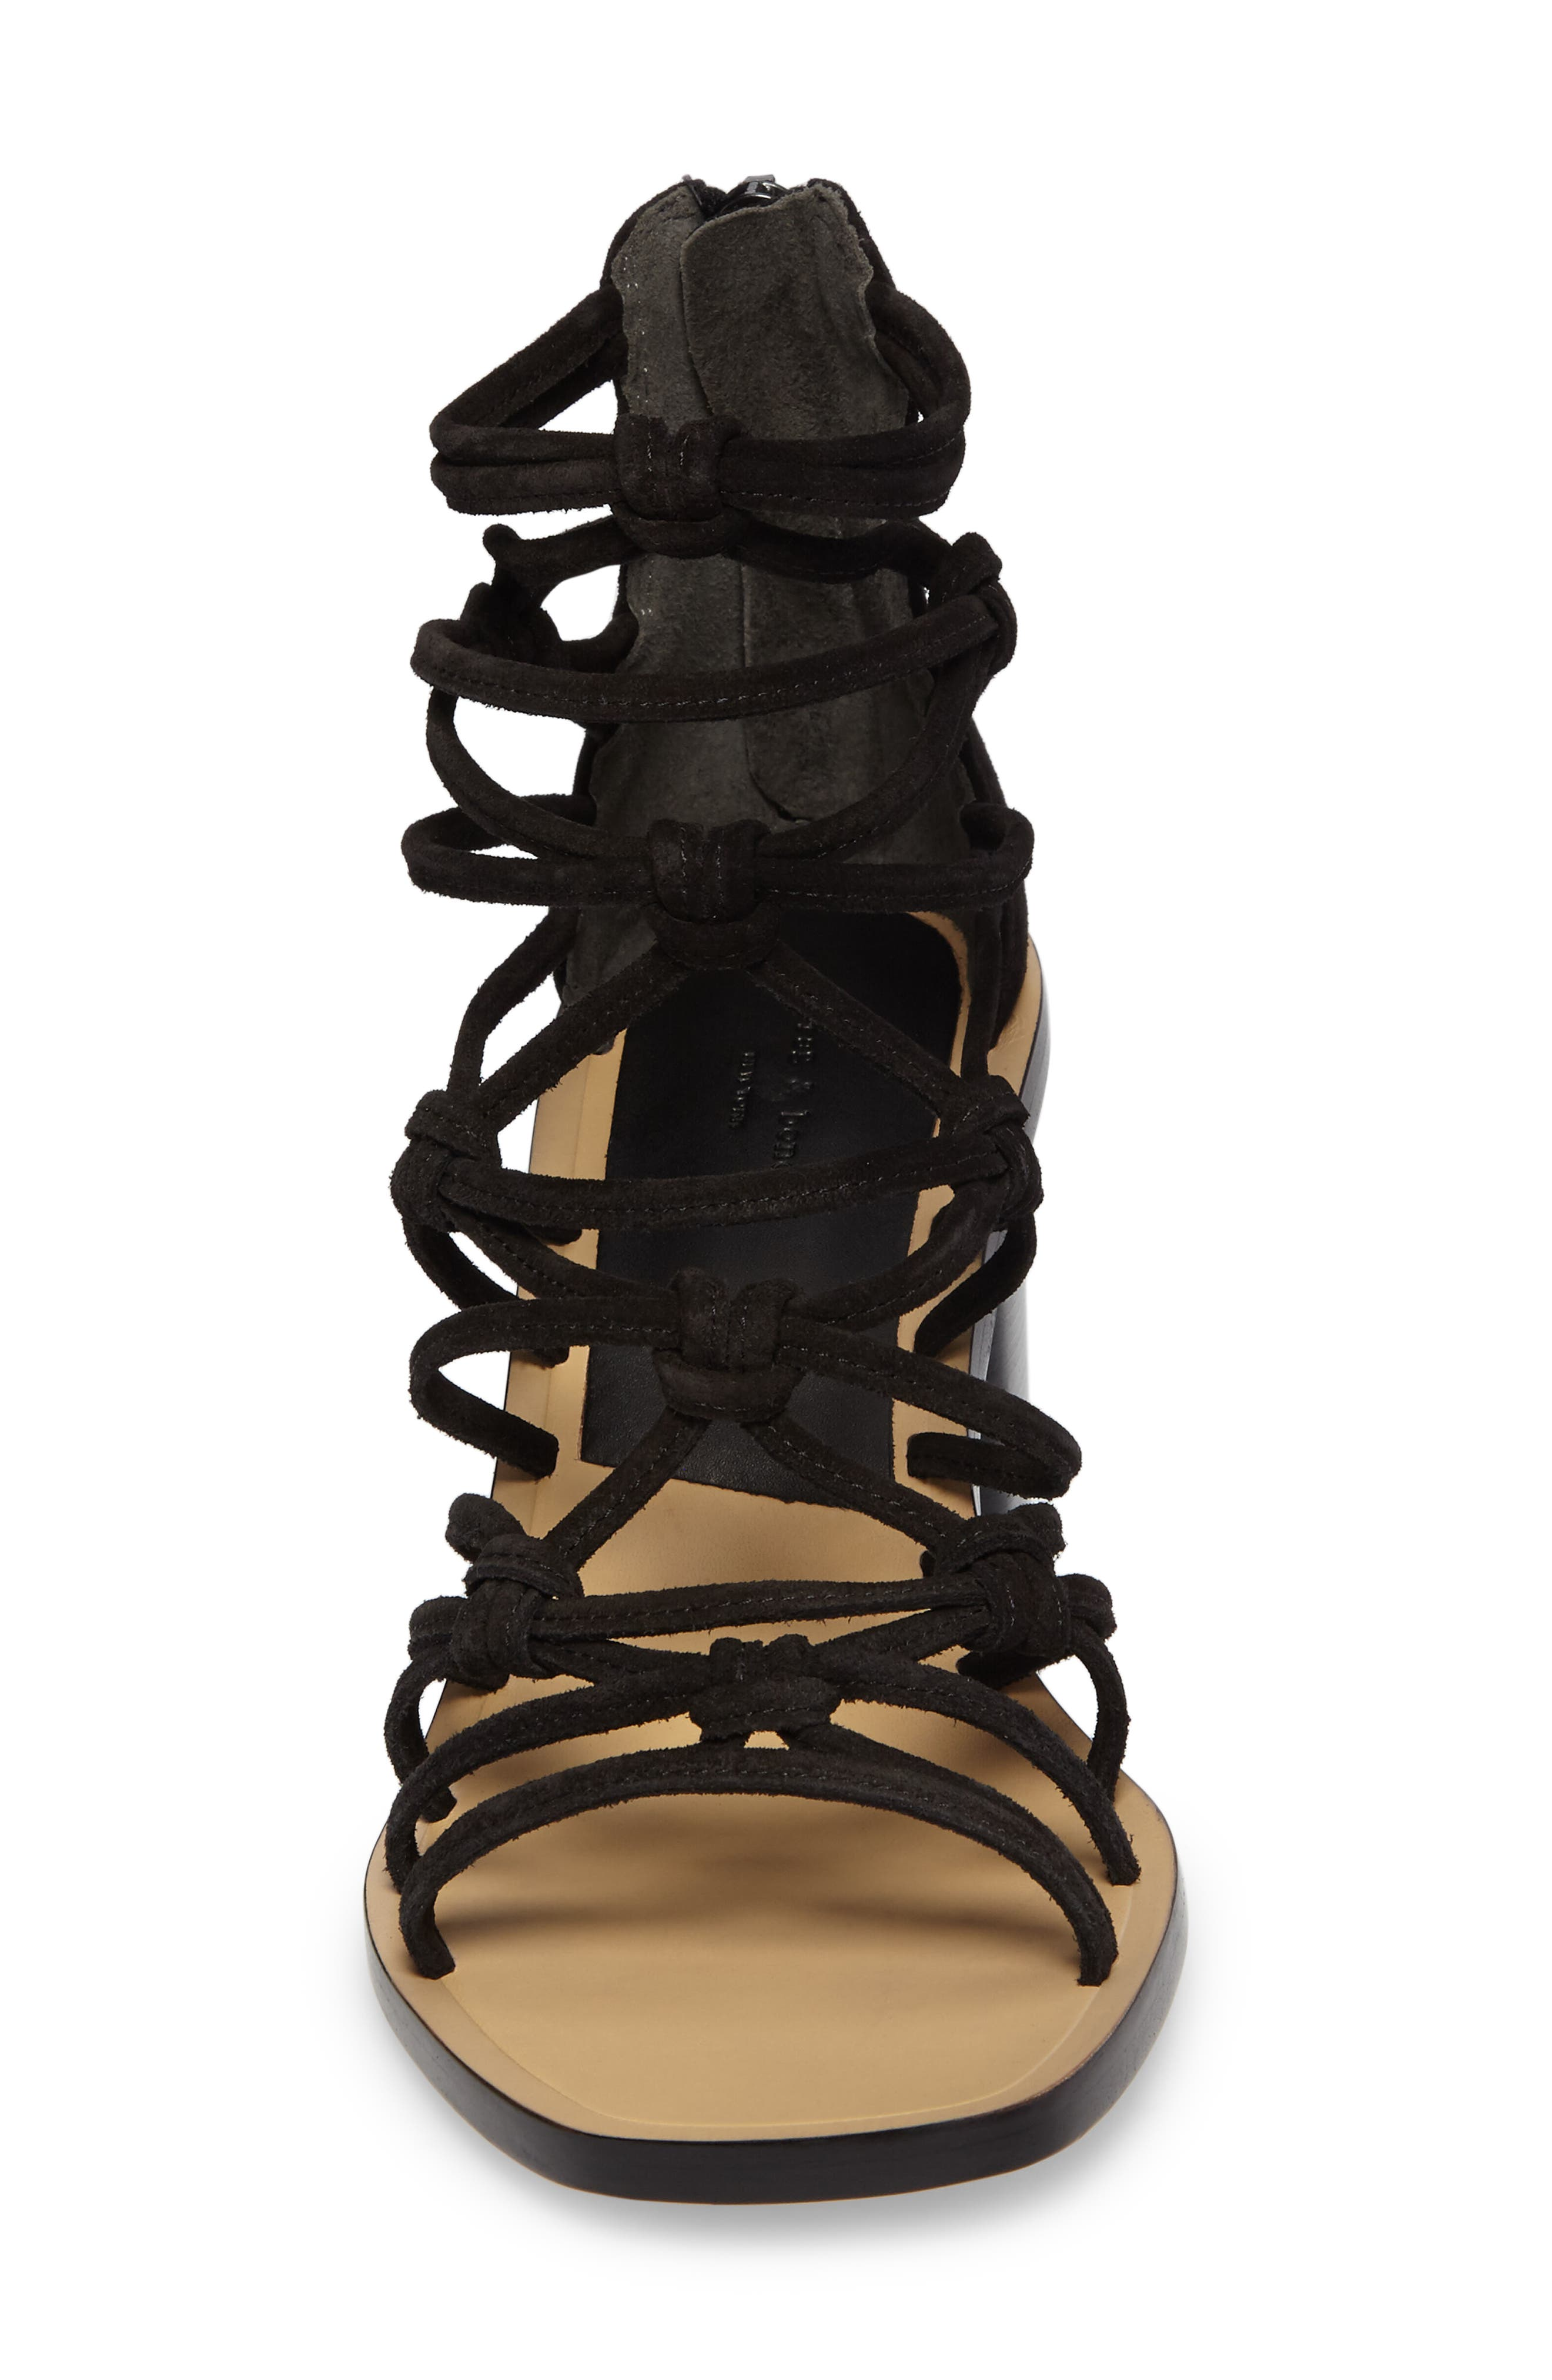 Camille Knotted Strappy Sandal,                             Alternate thumbnail 4, color,                             Black Suede